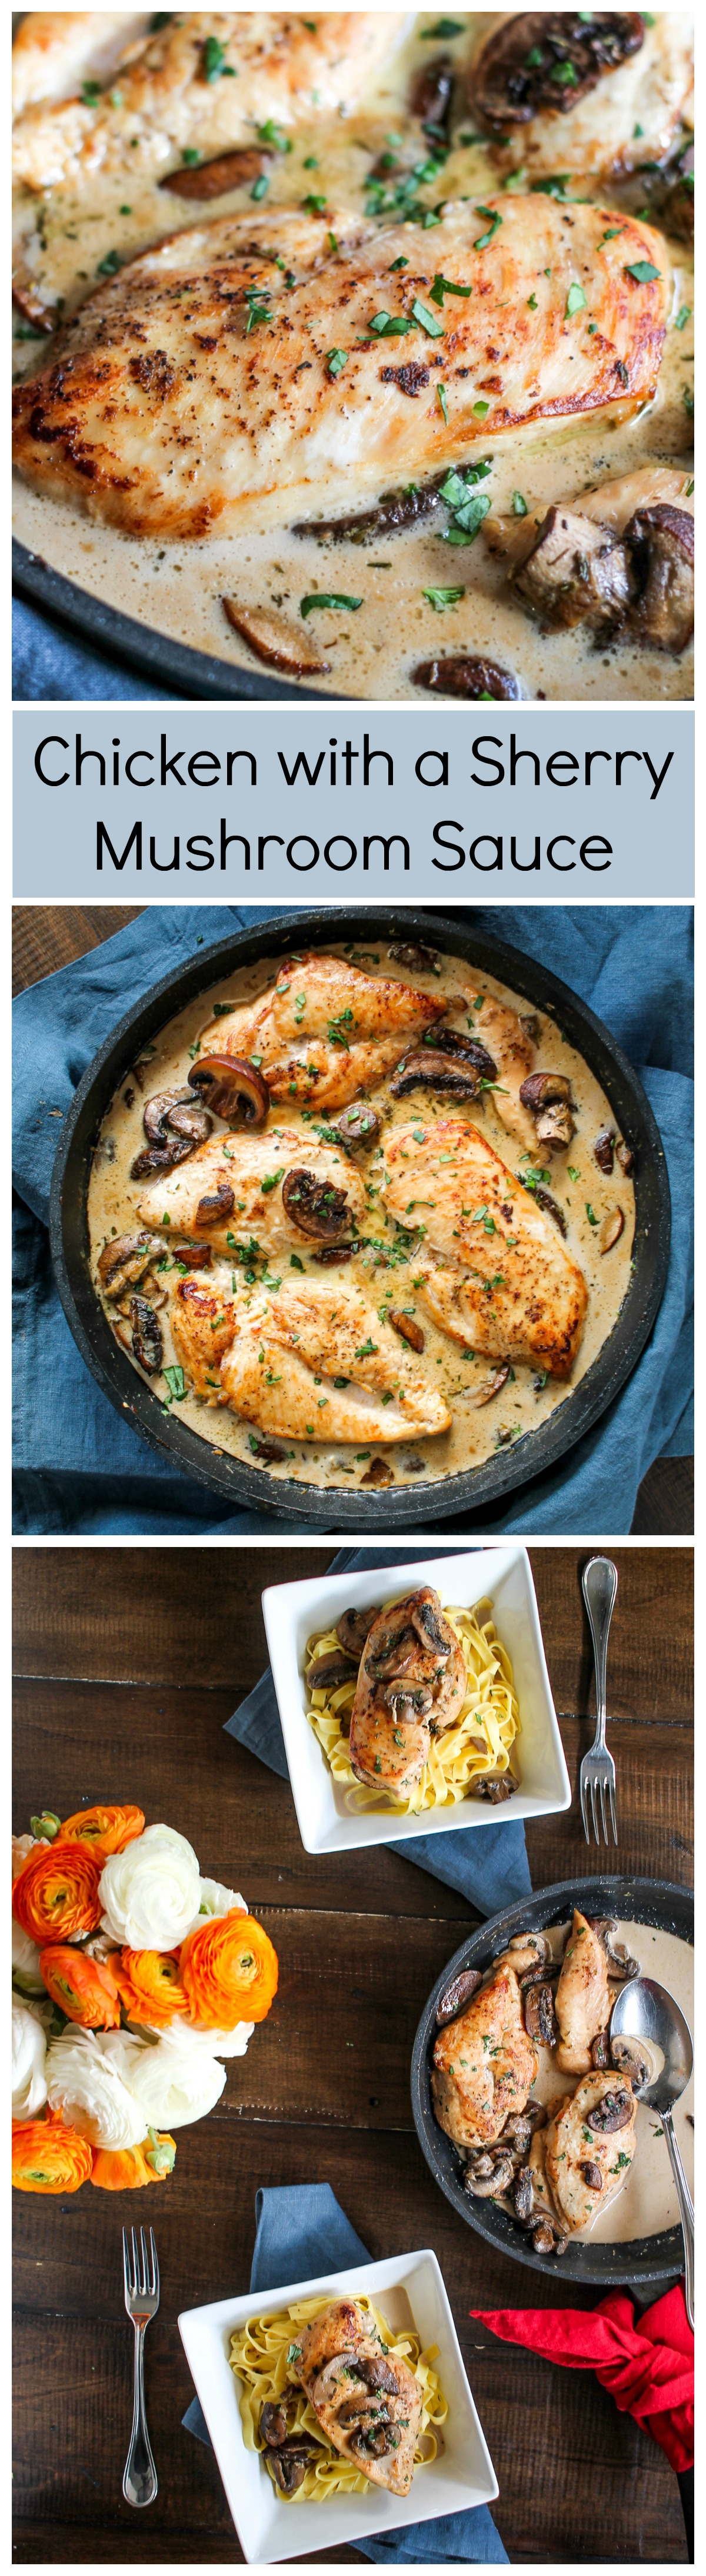 Chicken with a sherry mushroom sauce thekittchen chicken with a sherry mushroom sauce an elegant meal you can make in a hour forumfinder Image collections